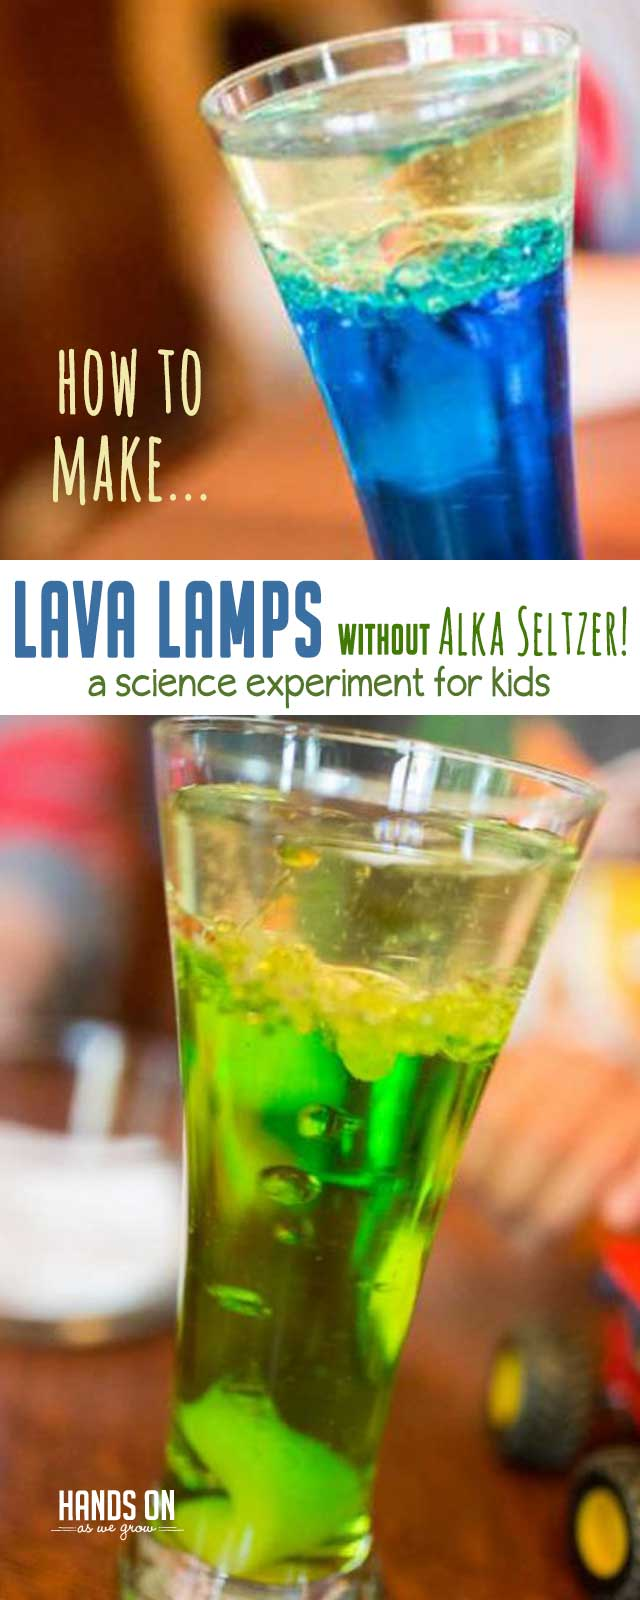 Learn How To Make A Lava Lamp Without Alka Seltzer In This Super Easy At